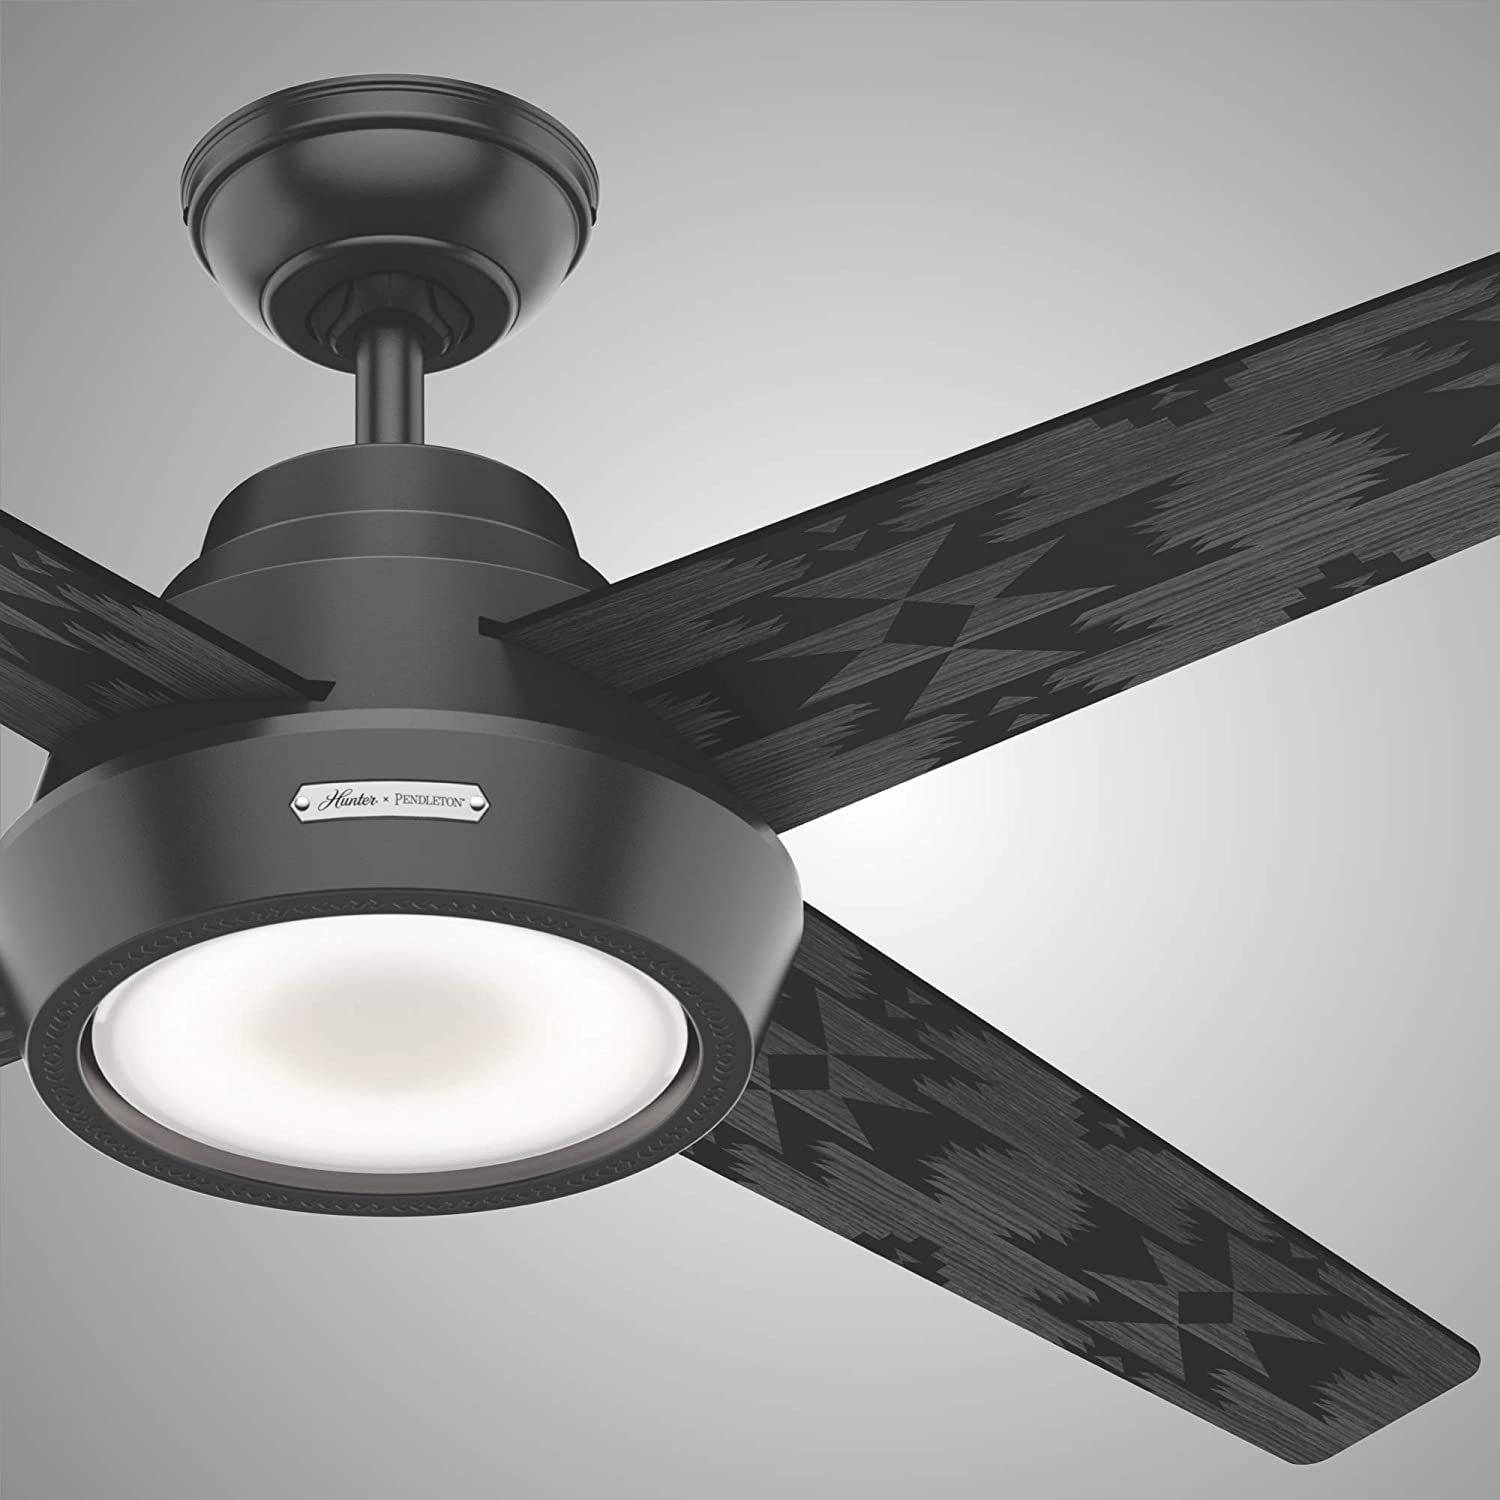 Hunter Spider Rock Indoor Ceiling Fan With Led Light And Remote Control 54 Matte Black Amazon Com